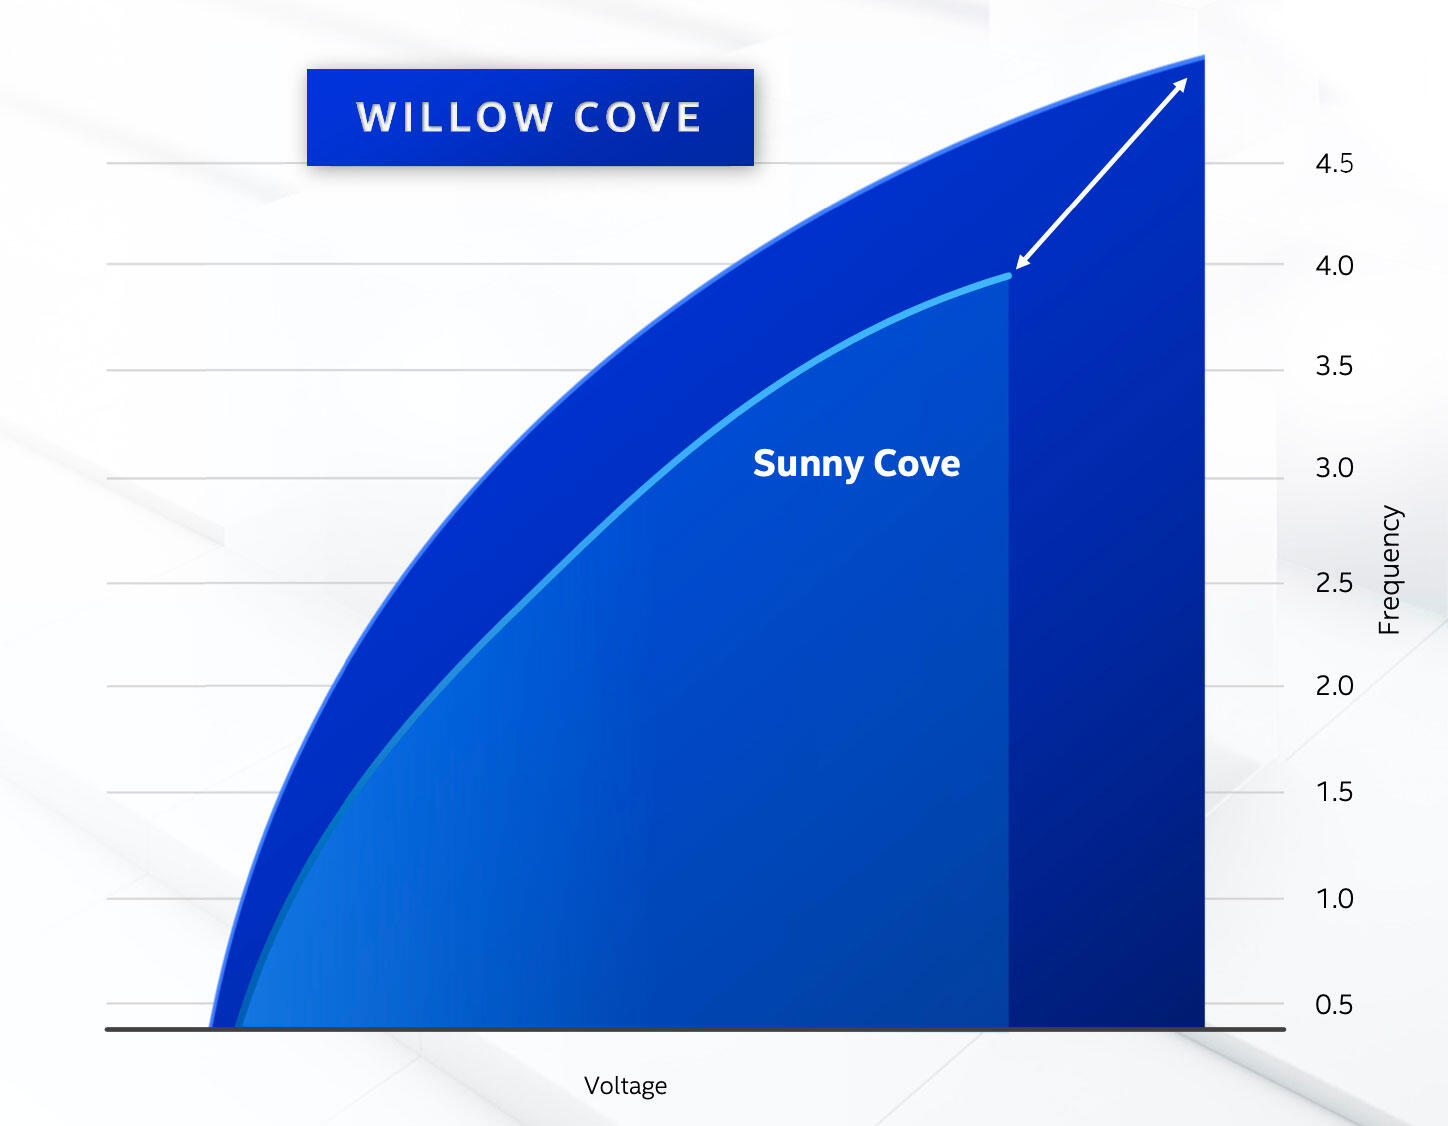 The Willow Cove core at the heart of Intel's Tiger Lake chips can run either faster or more efficiently than the Sunny Cove cores in today's Ice Lake chips.